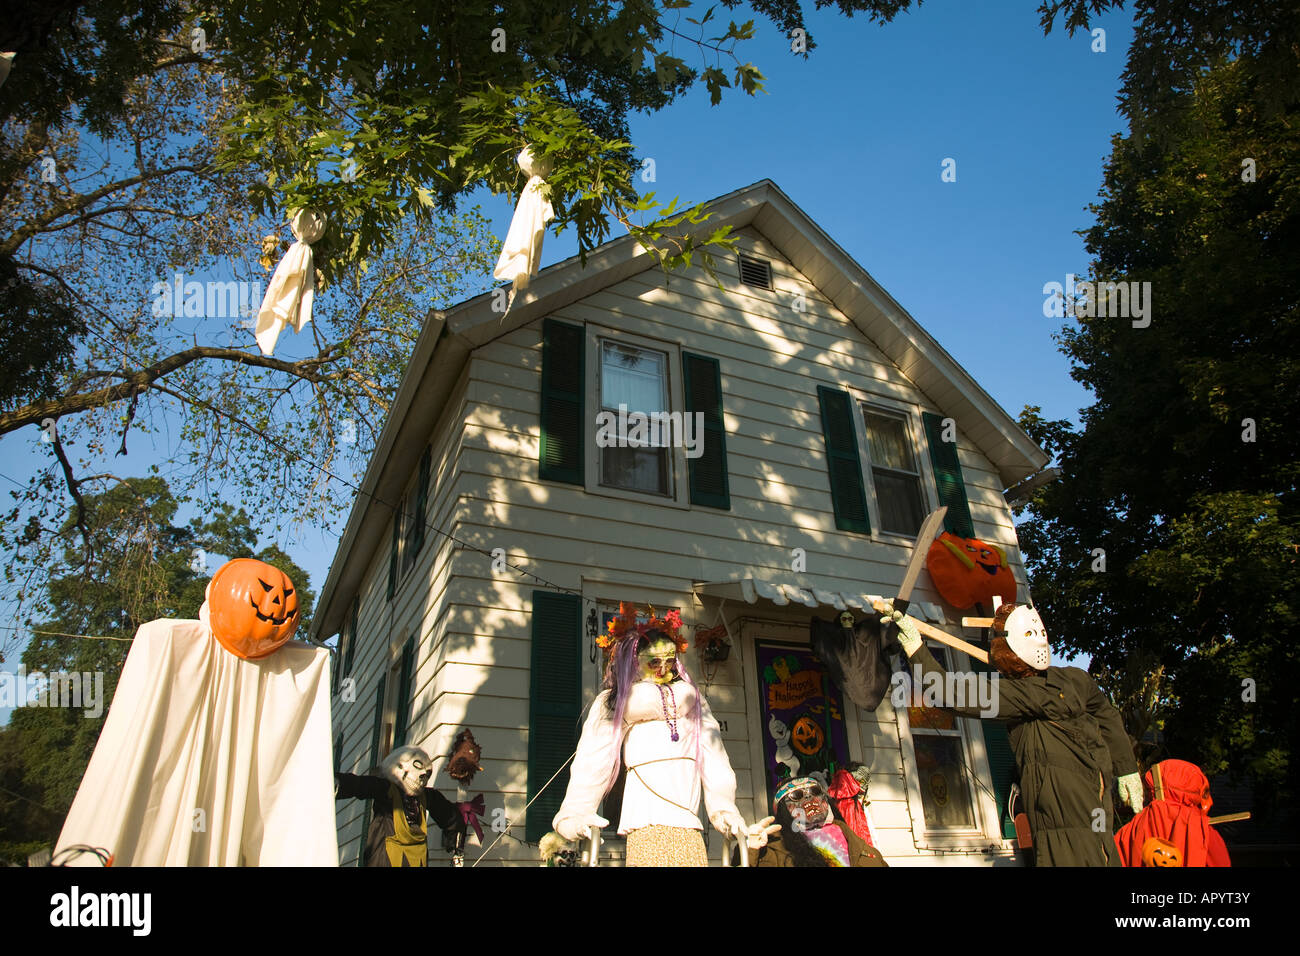 Illinois Dixon Ghoulish Halloween Decorations In Front Yard Of House